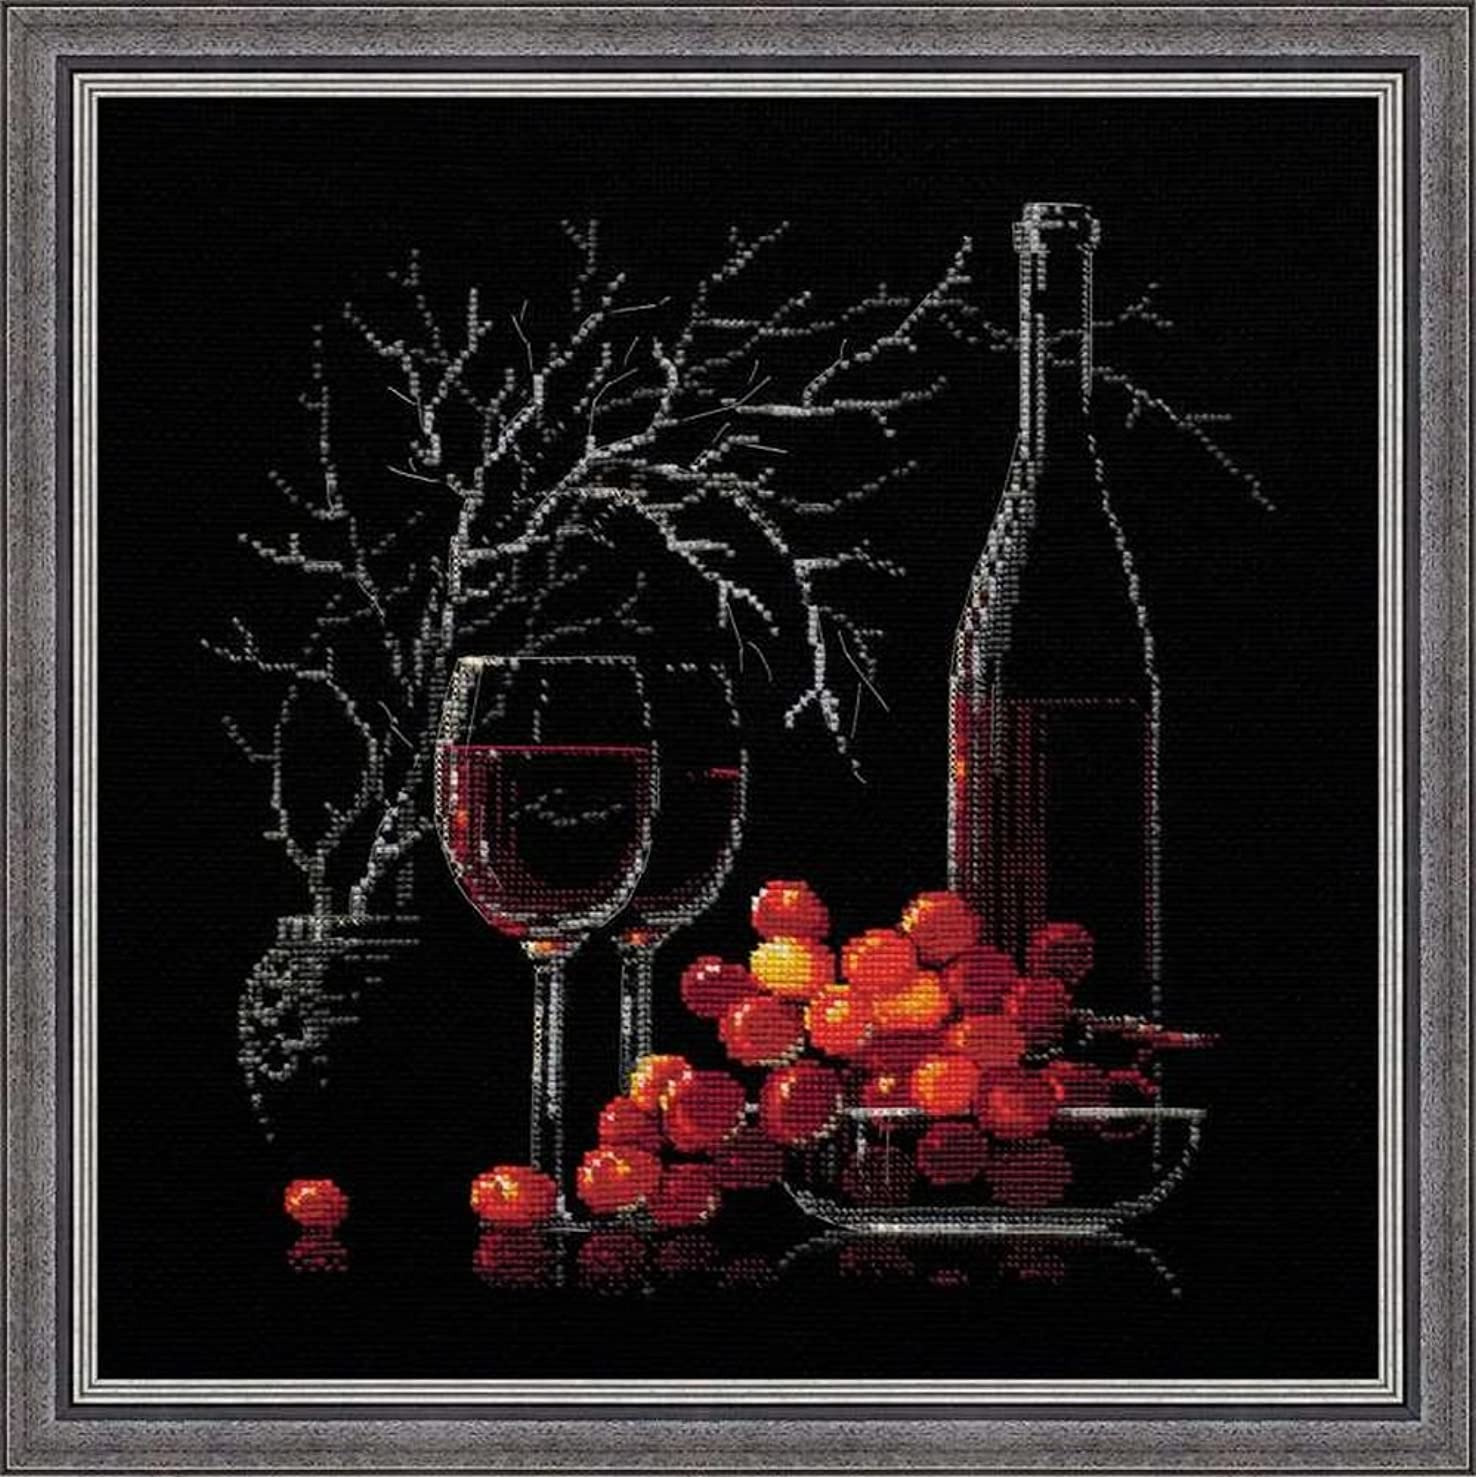 RIOLIS 1239 - Still Life with Red Wine - Counted Cross Stitch Kit 11?